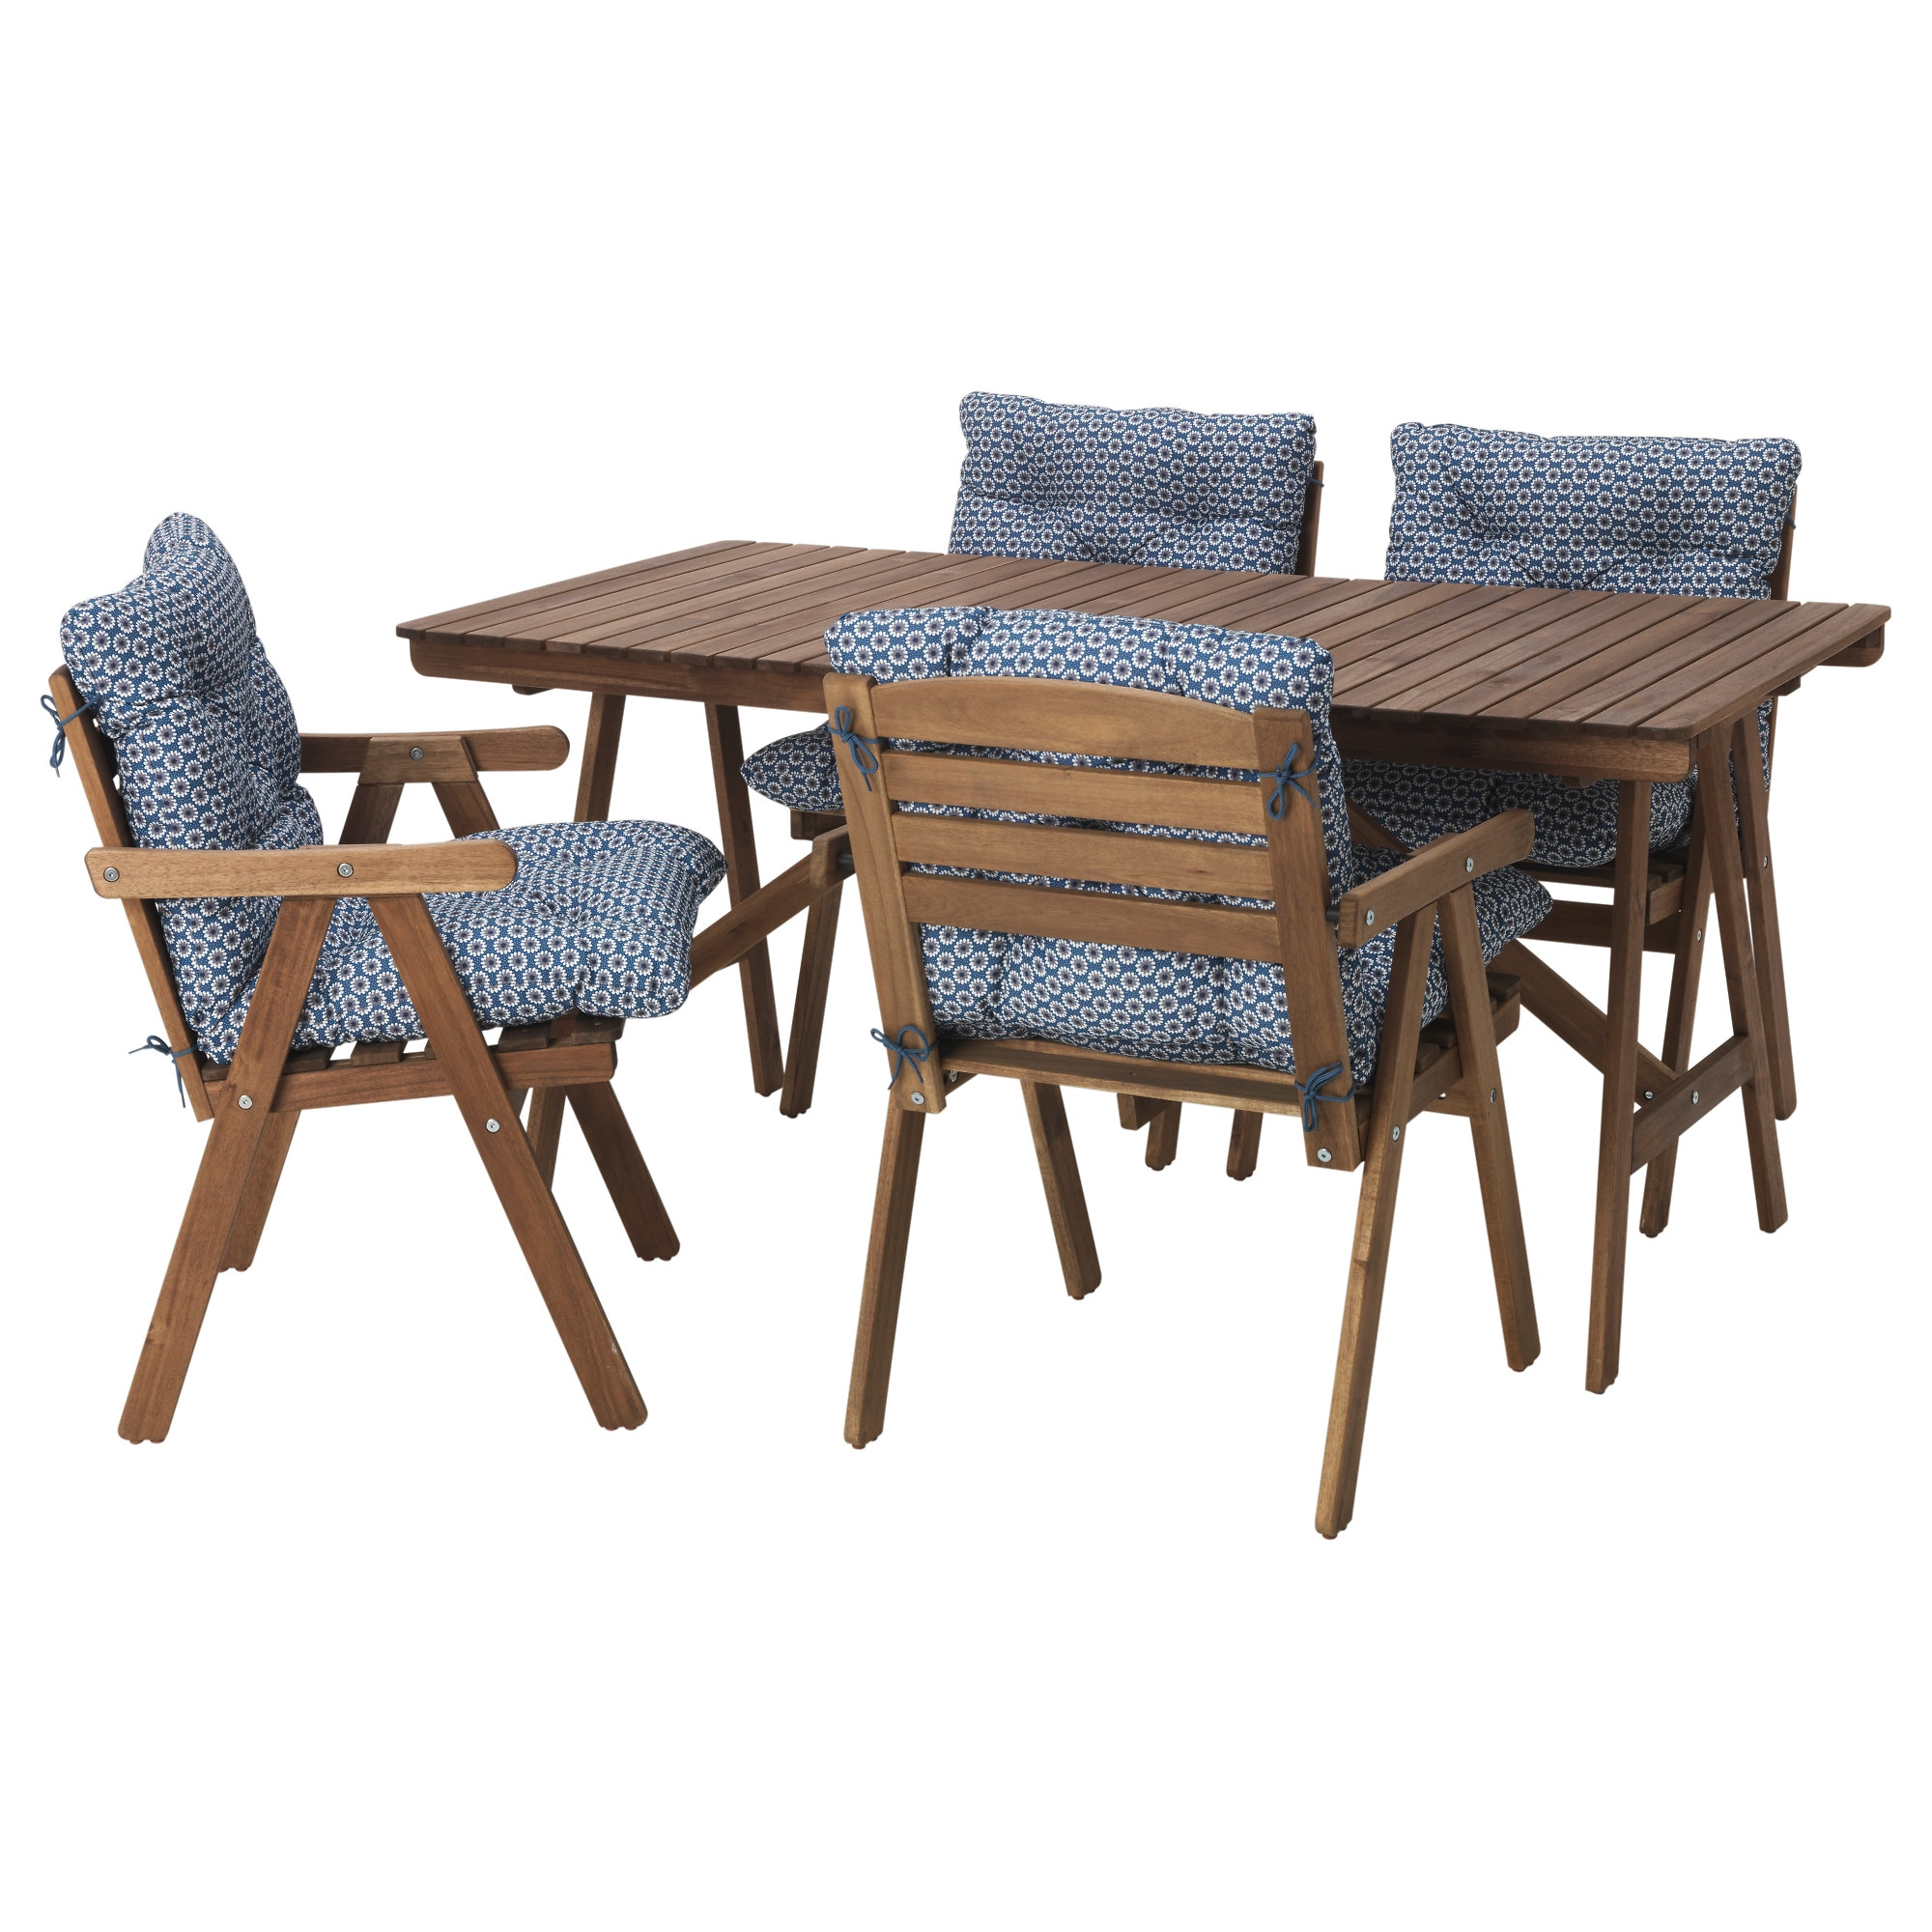 FALHOLMEN Table And 4 Armchairs, Outdoor, Gray Brown, Ytterön Blue